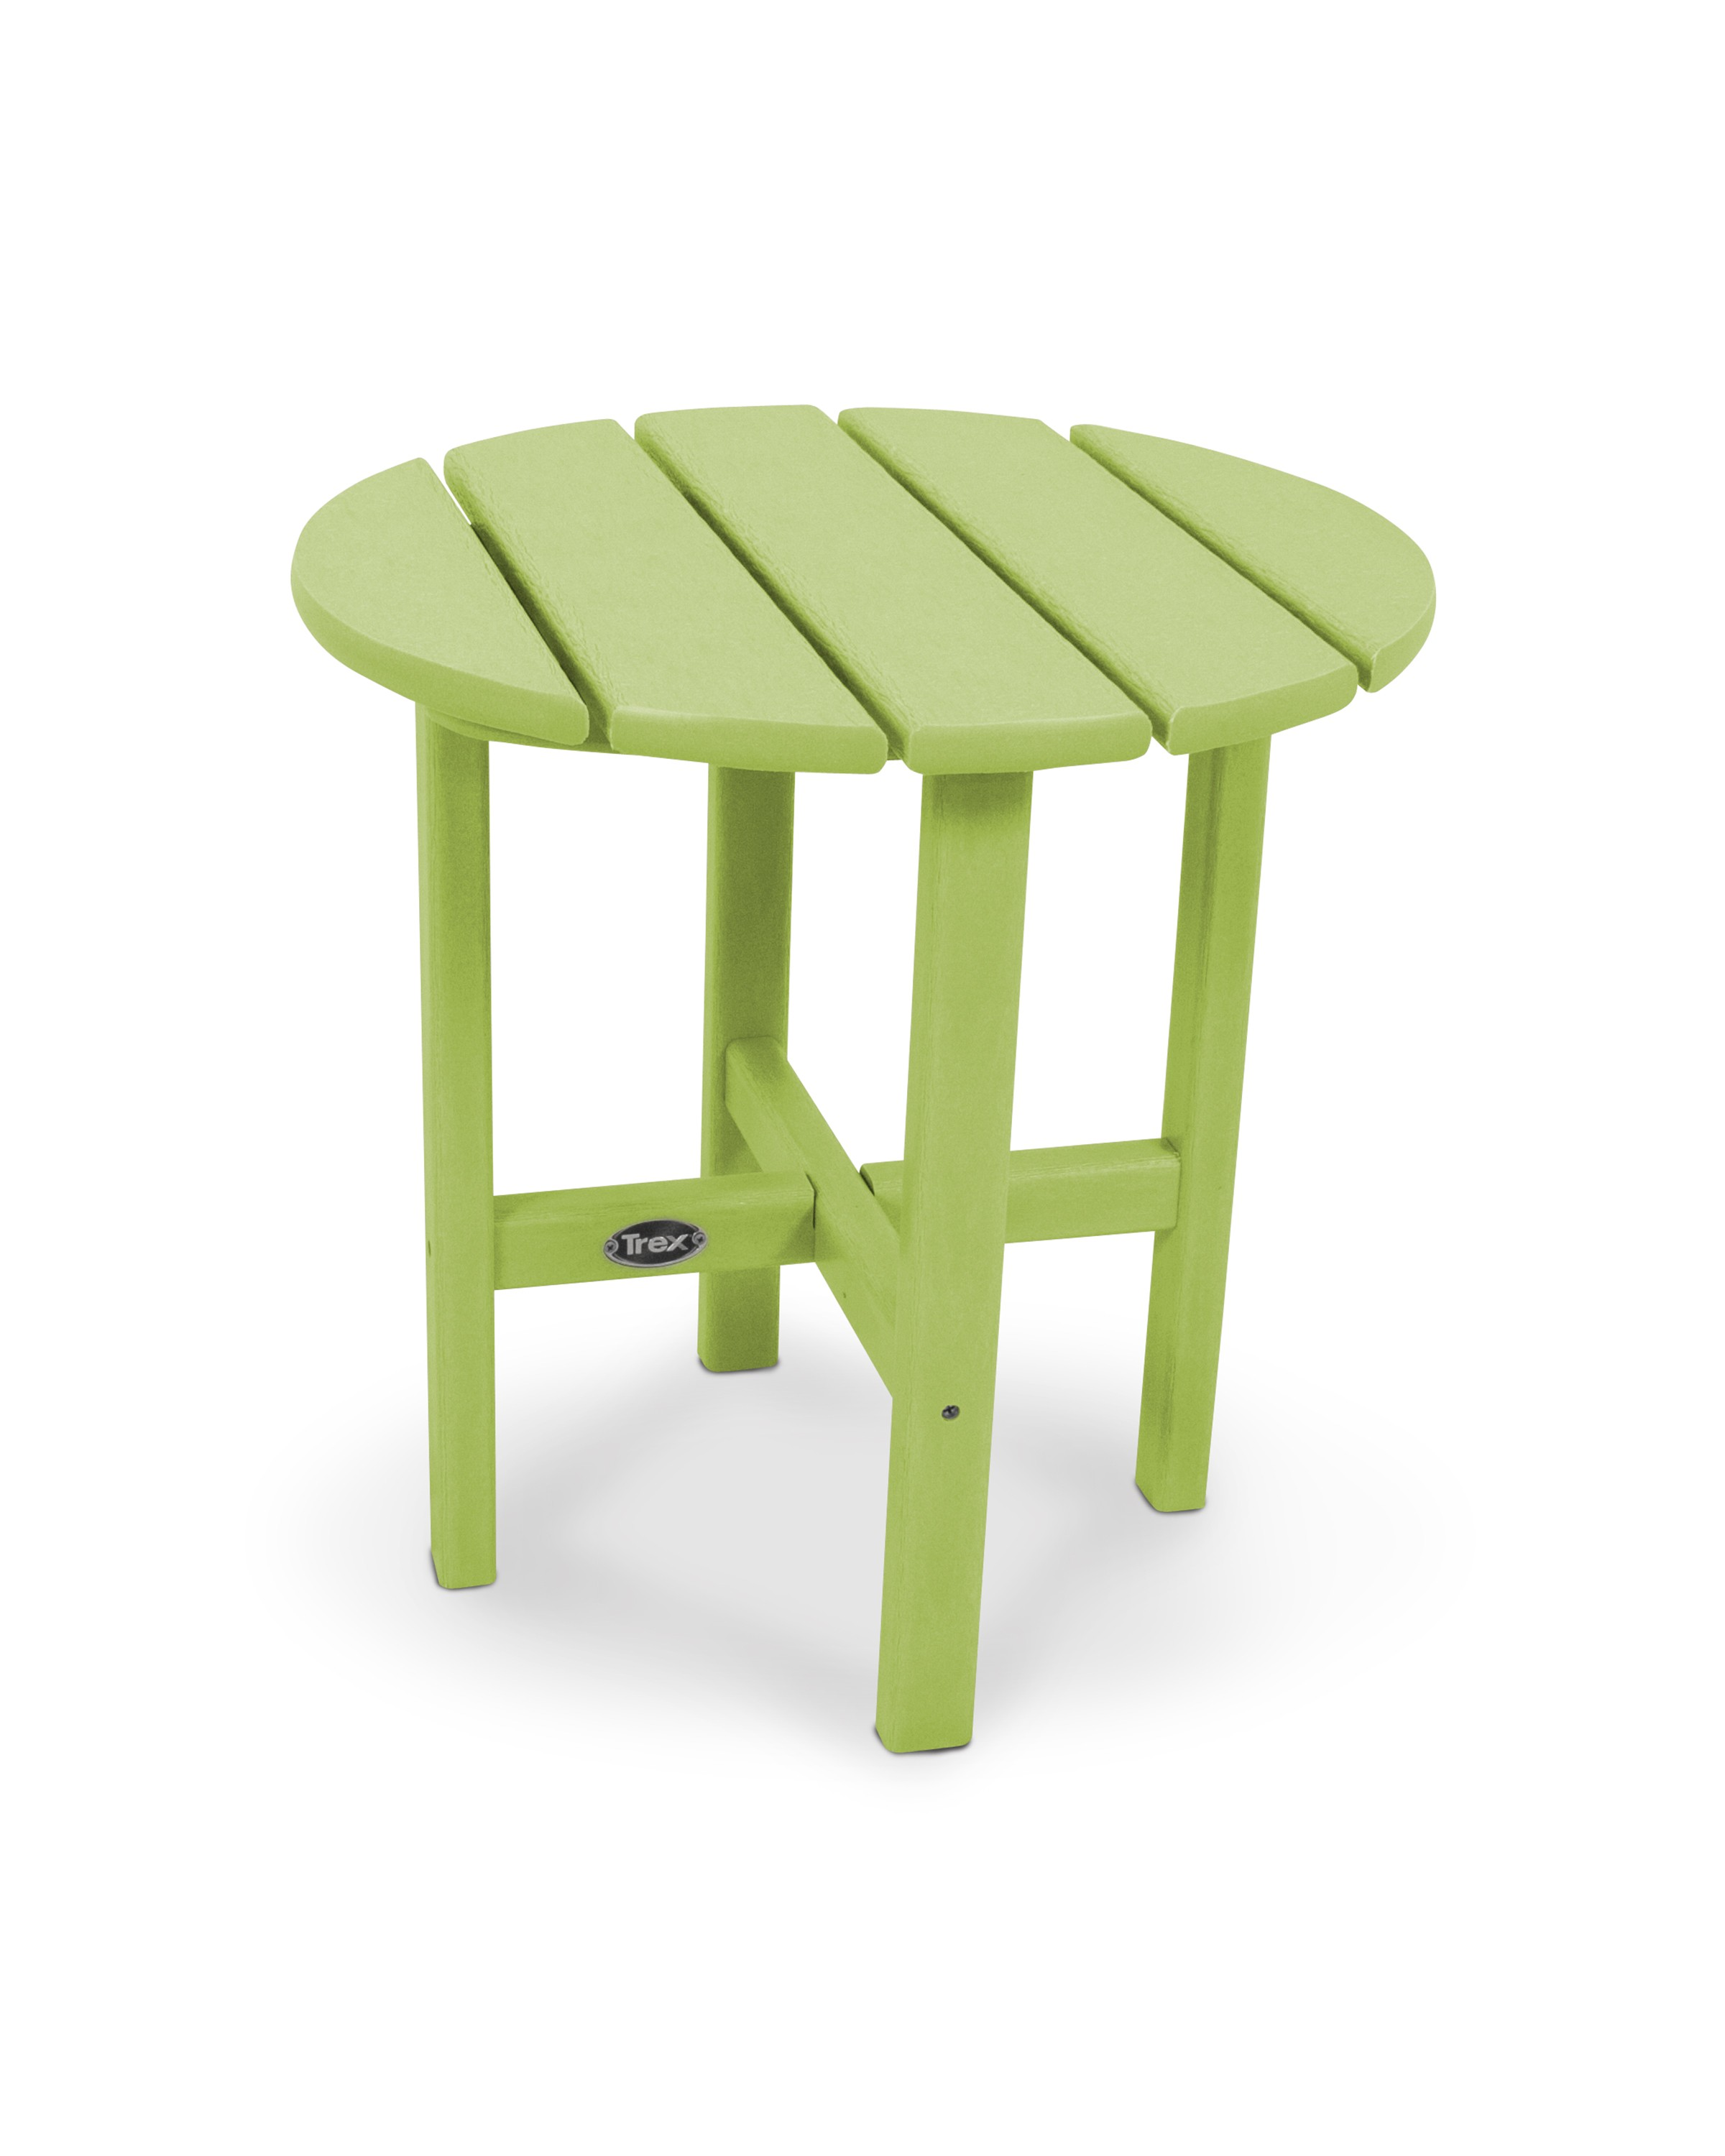 Outdoor Side Table Furniture Grottepastenaecollepardo